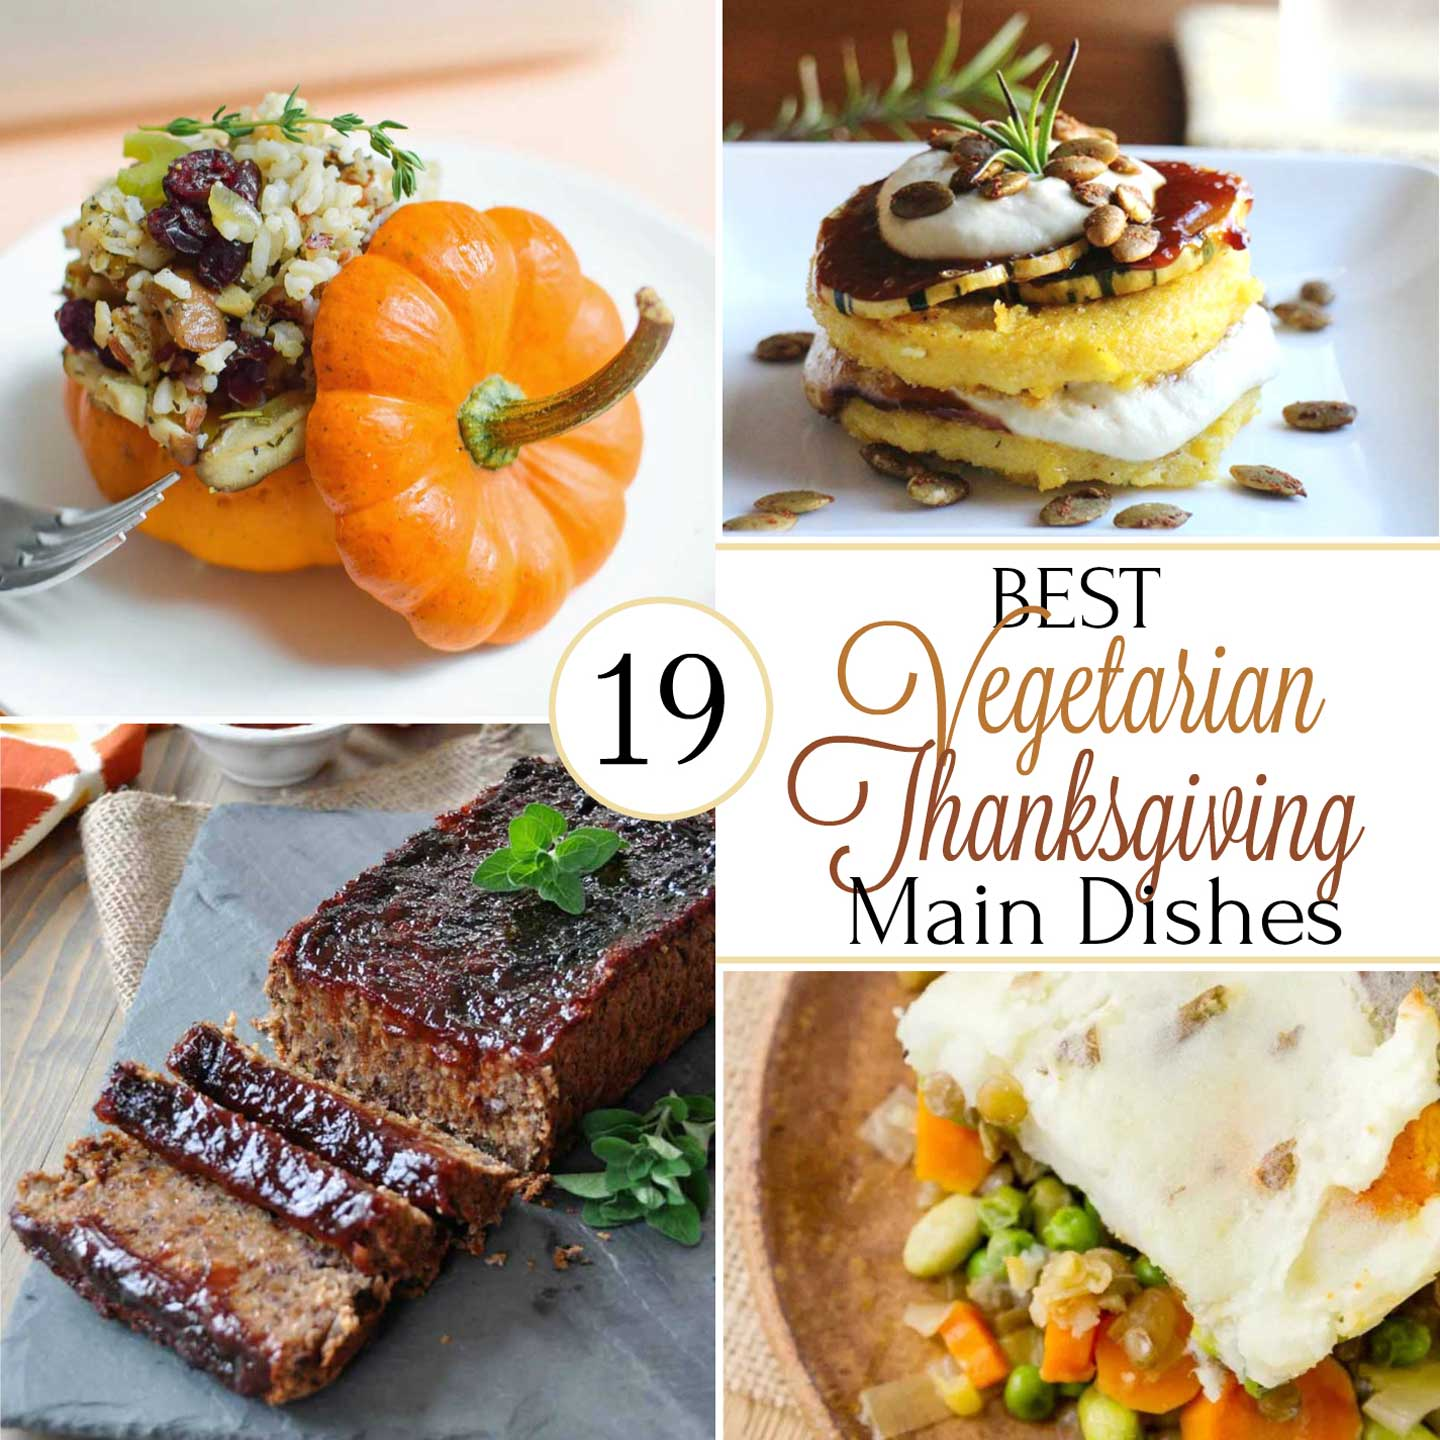 17 of the Best Vegan Thanksgiving Main Dish Recipes |Thanksgiving Main Dishes